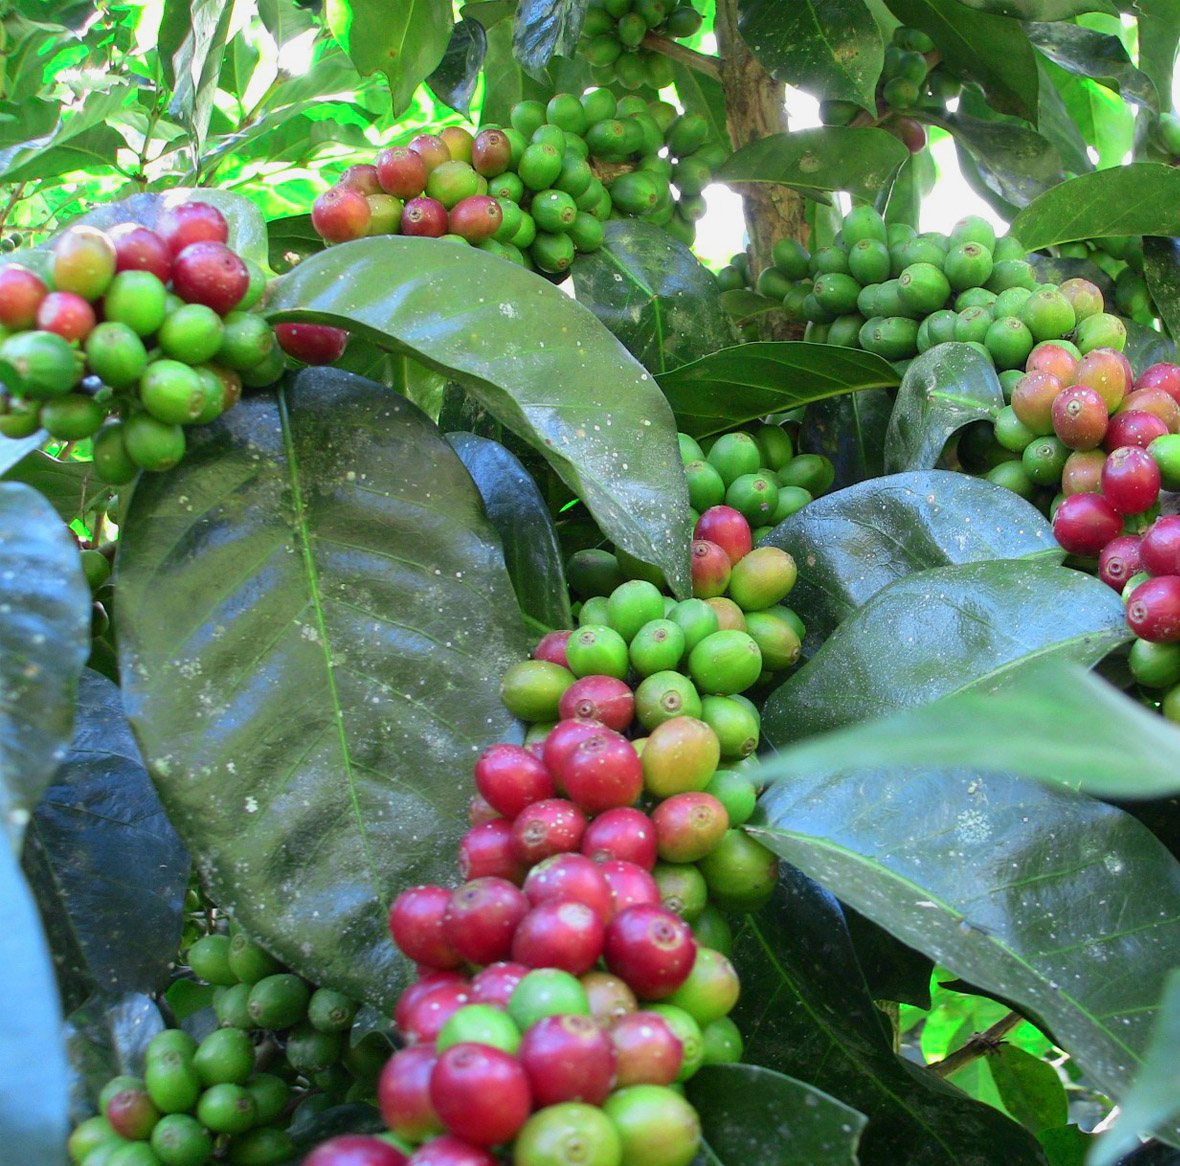 Organic Specialty Coffee - We farm, produce, and export specialty coffee to the United States